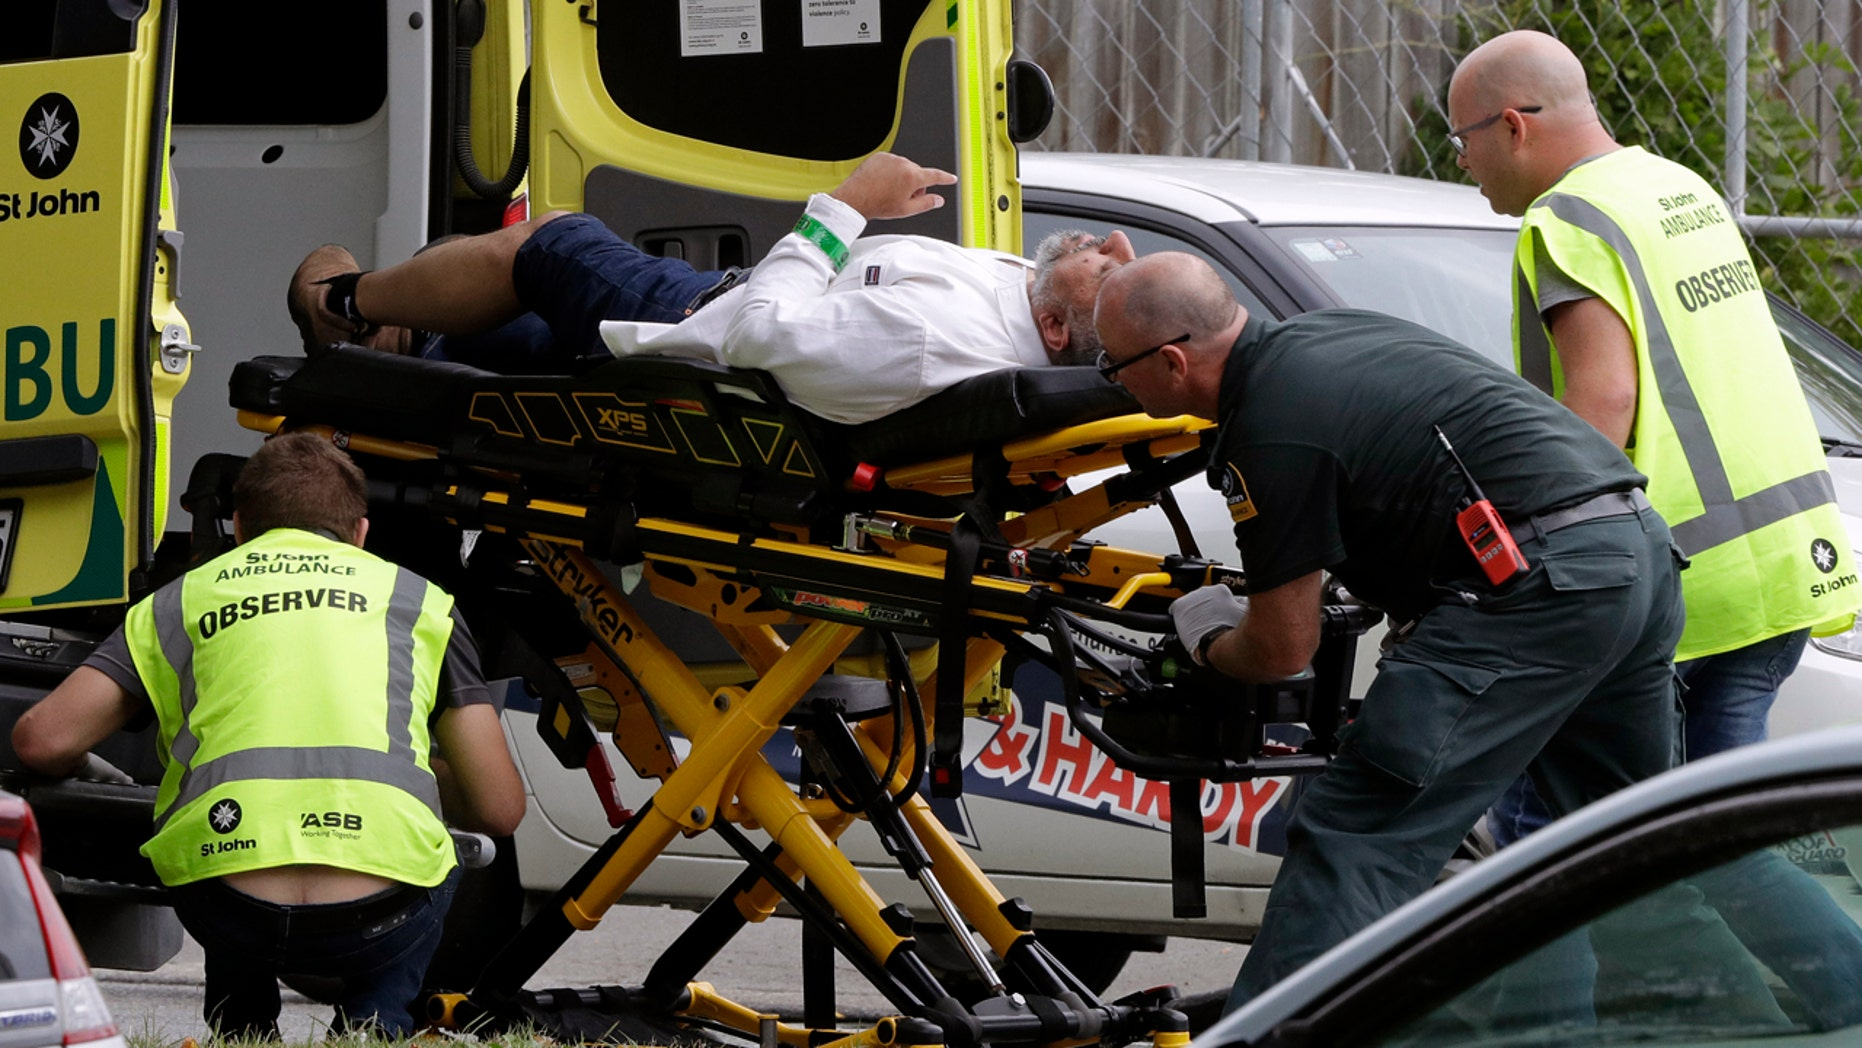 Christchurch Shooting Picture: Witnesses Say Many Dead, Injured In Shooting At New